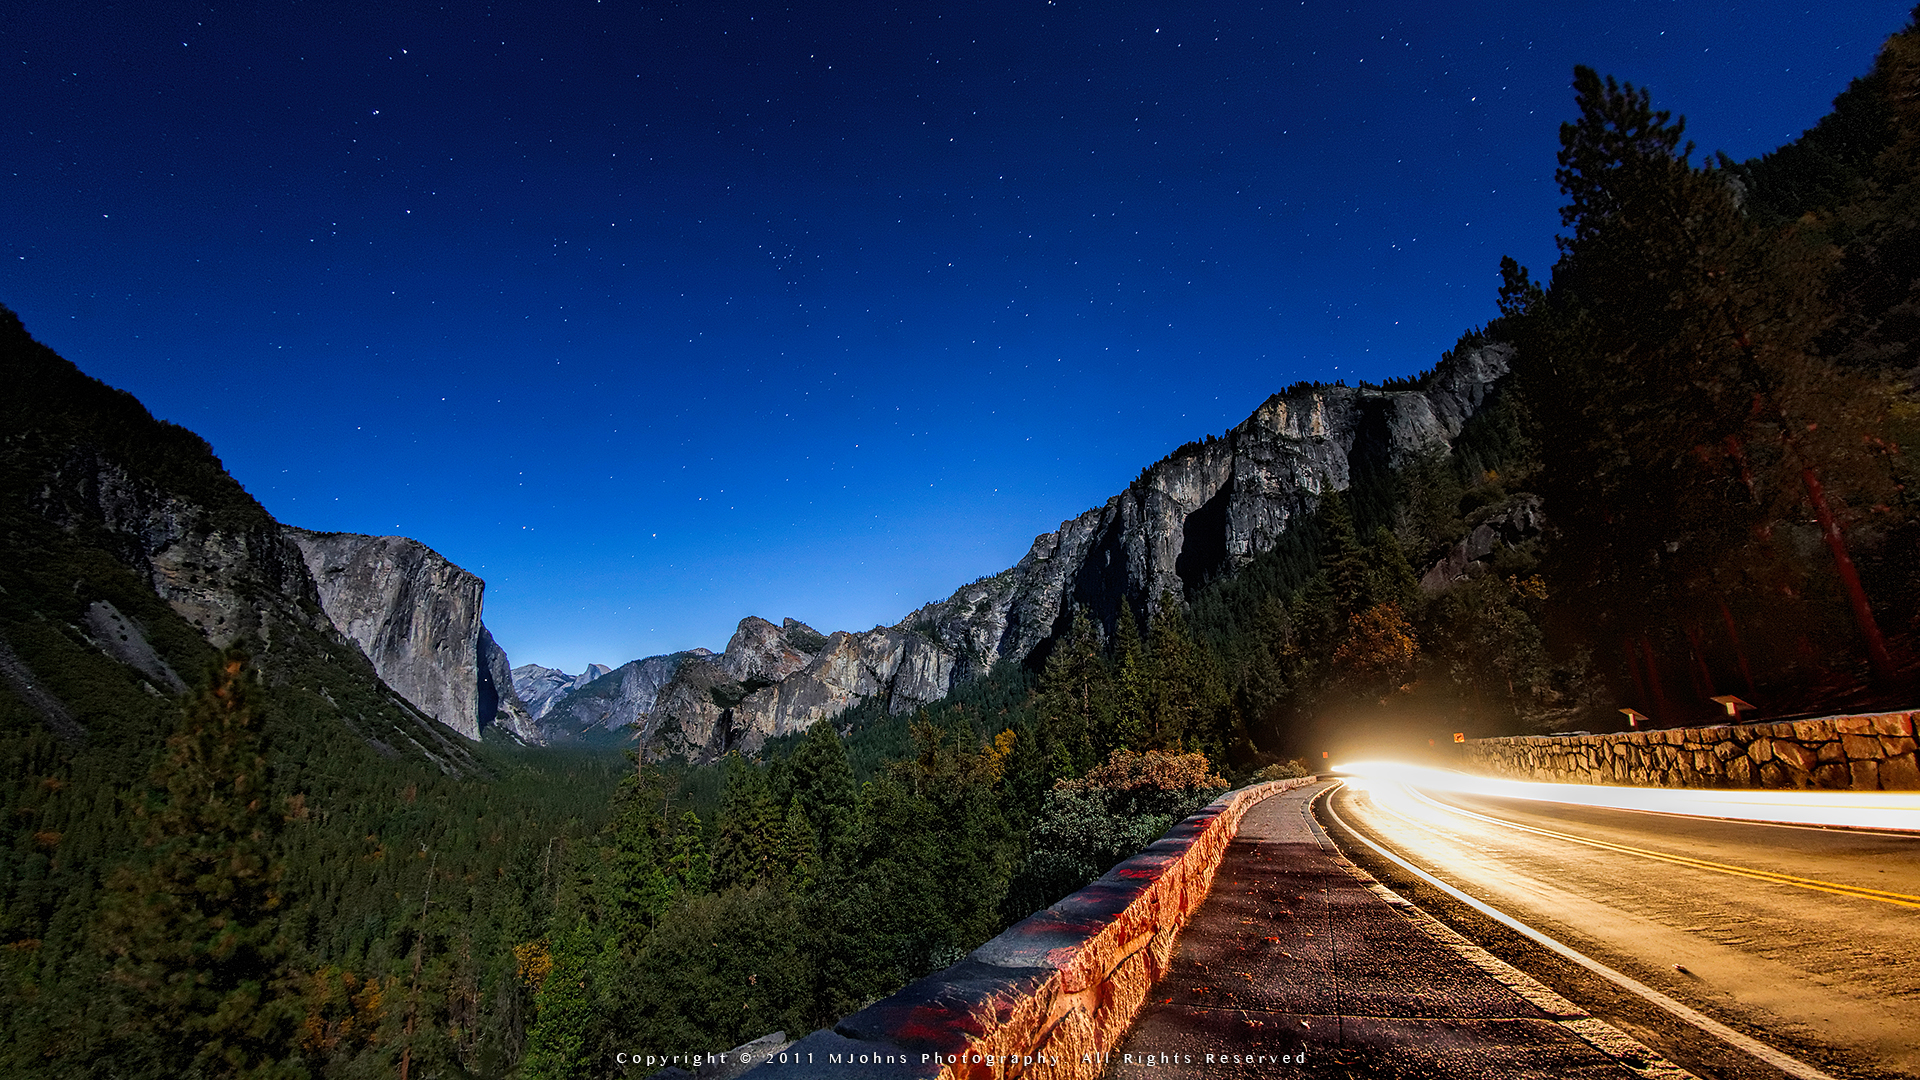 Apple Iphone Wallpaper Hd Download 免費下載 優勝美地高畫質桌布精選(一)yosemite Hd Wallpaper Mjohnsphoto